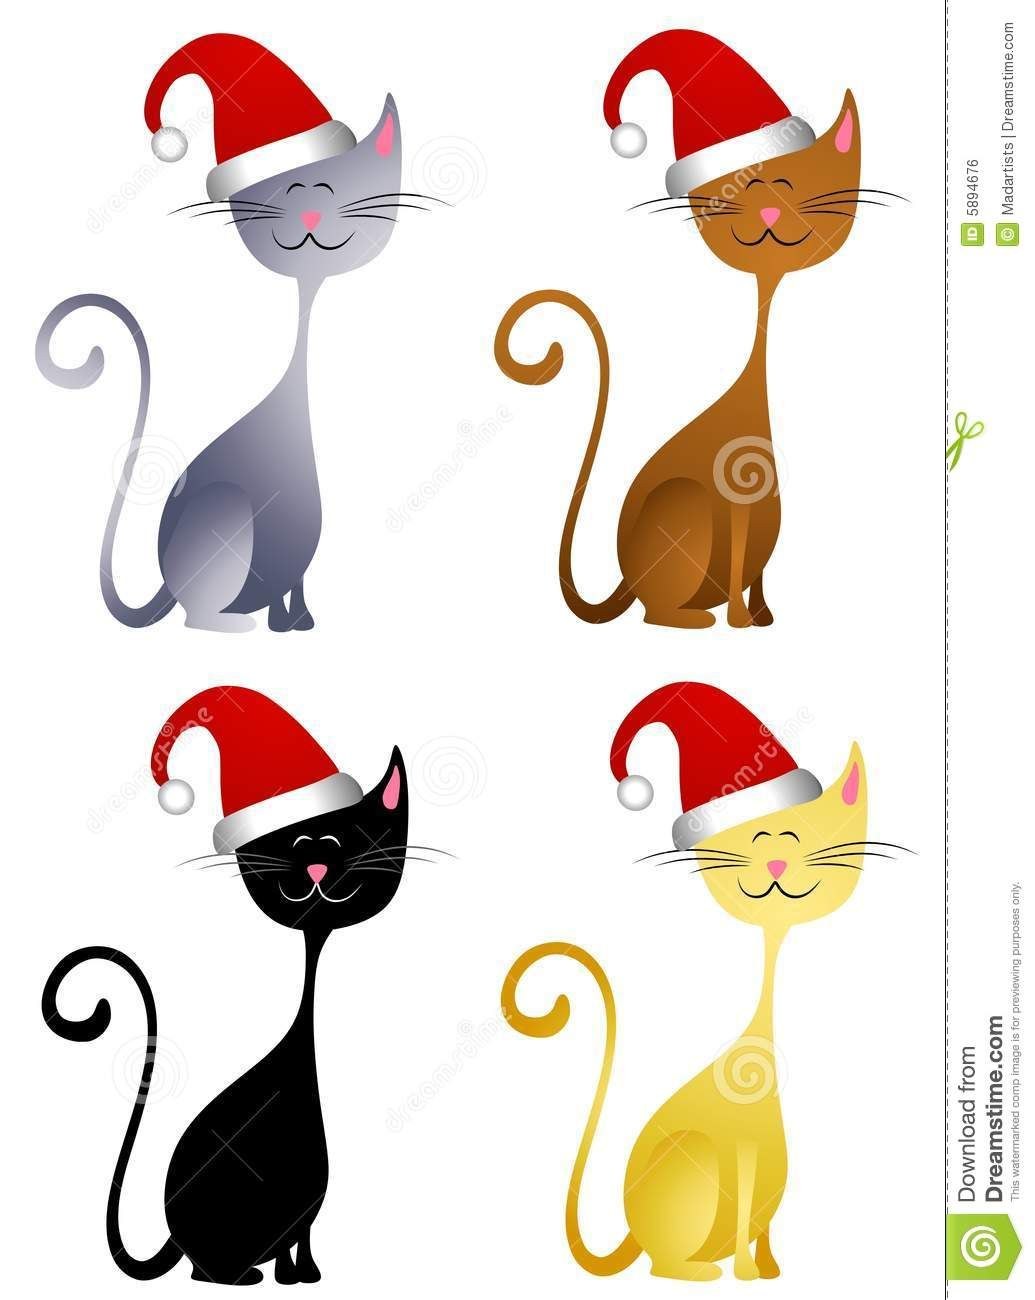 1035x1300 Christmas Cat Clip Art Free Images On Page 0 Yanhe Clip Art